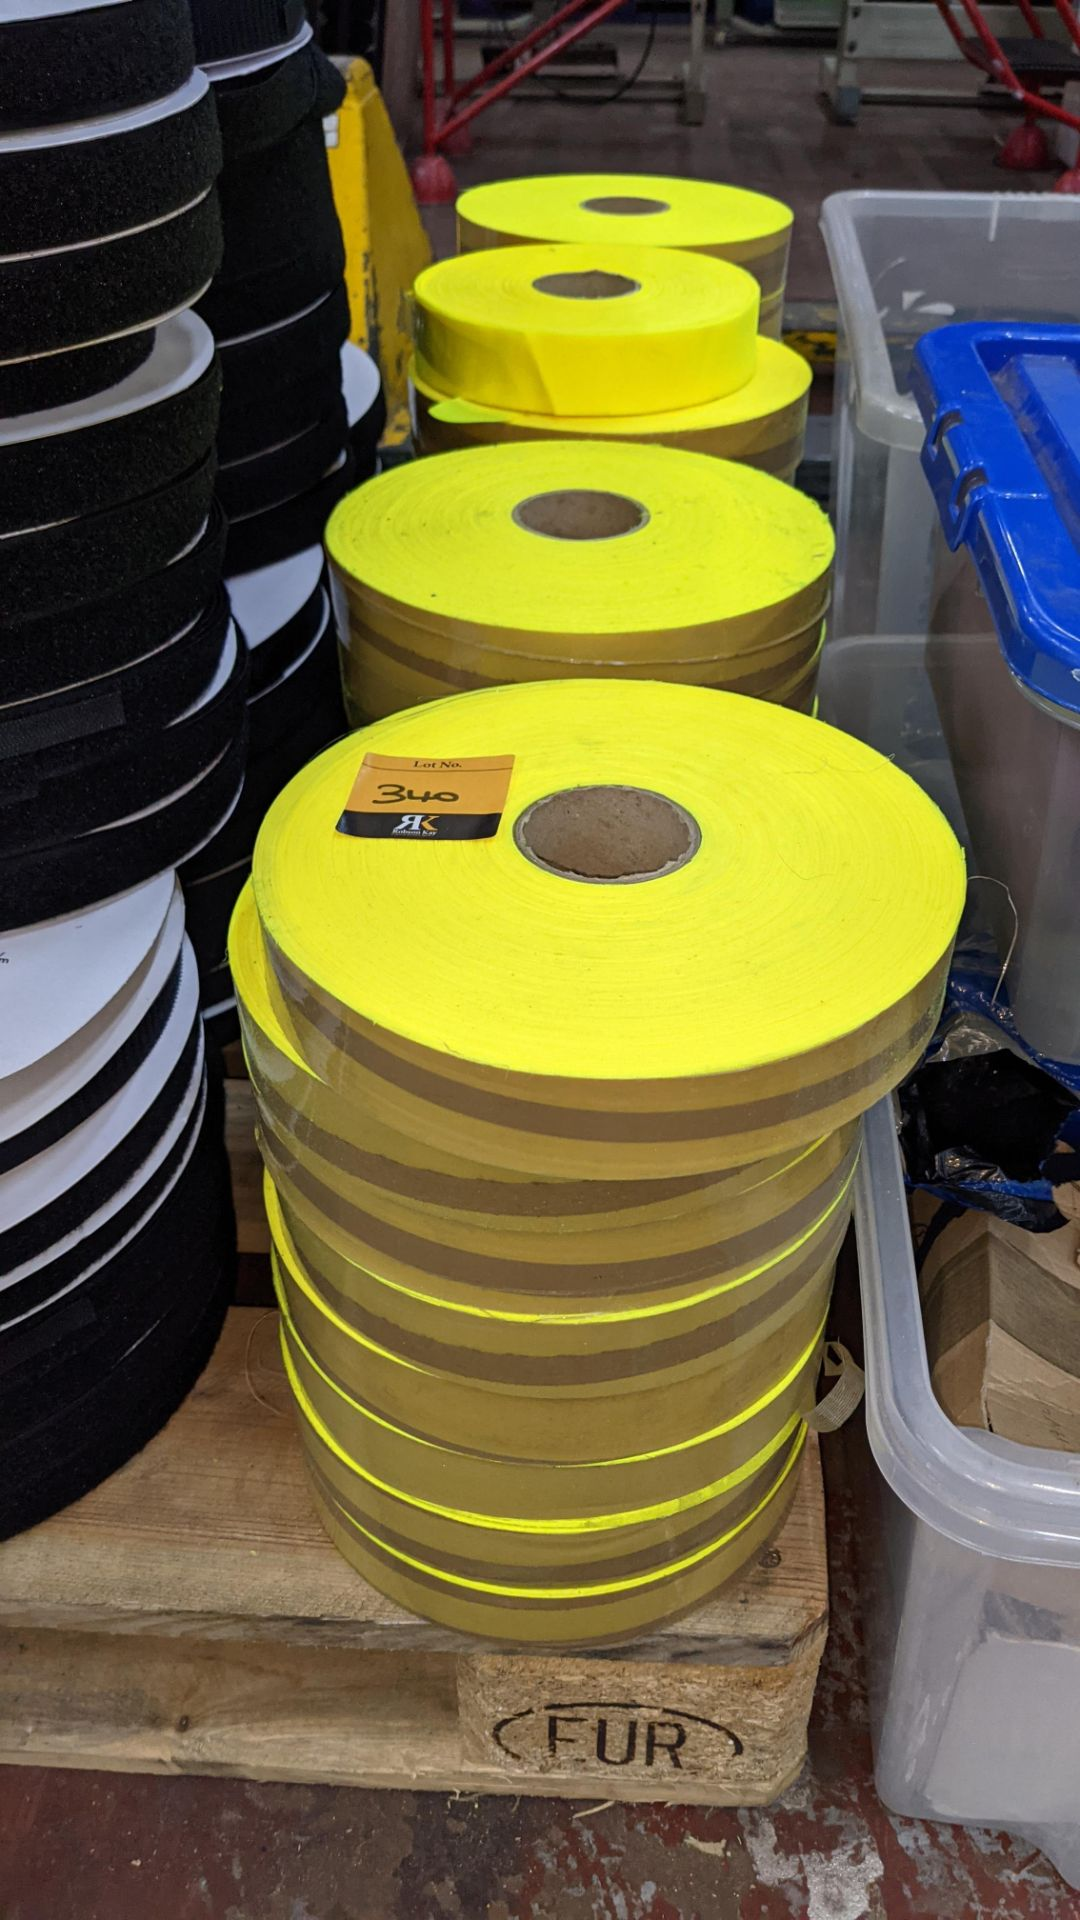 4 stacks of bright yellow tape/reflective material - Image 3 of 3